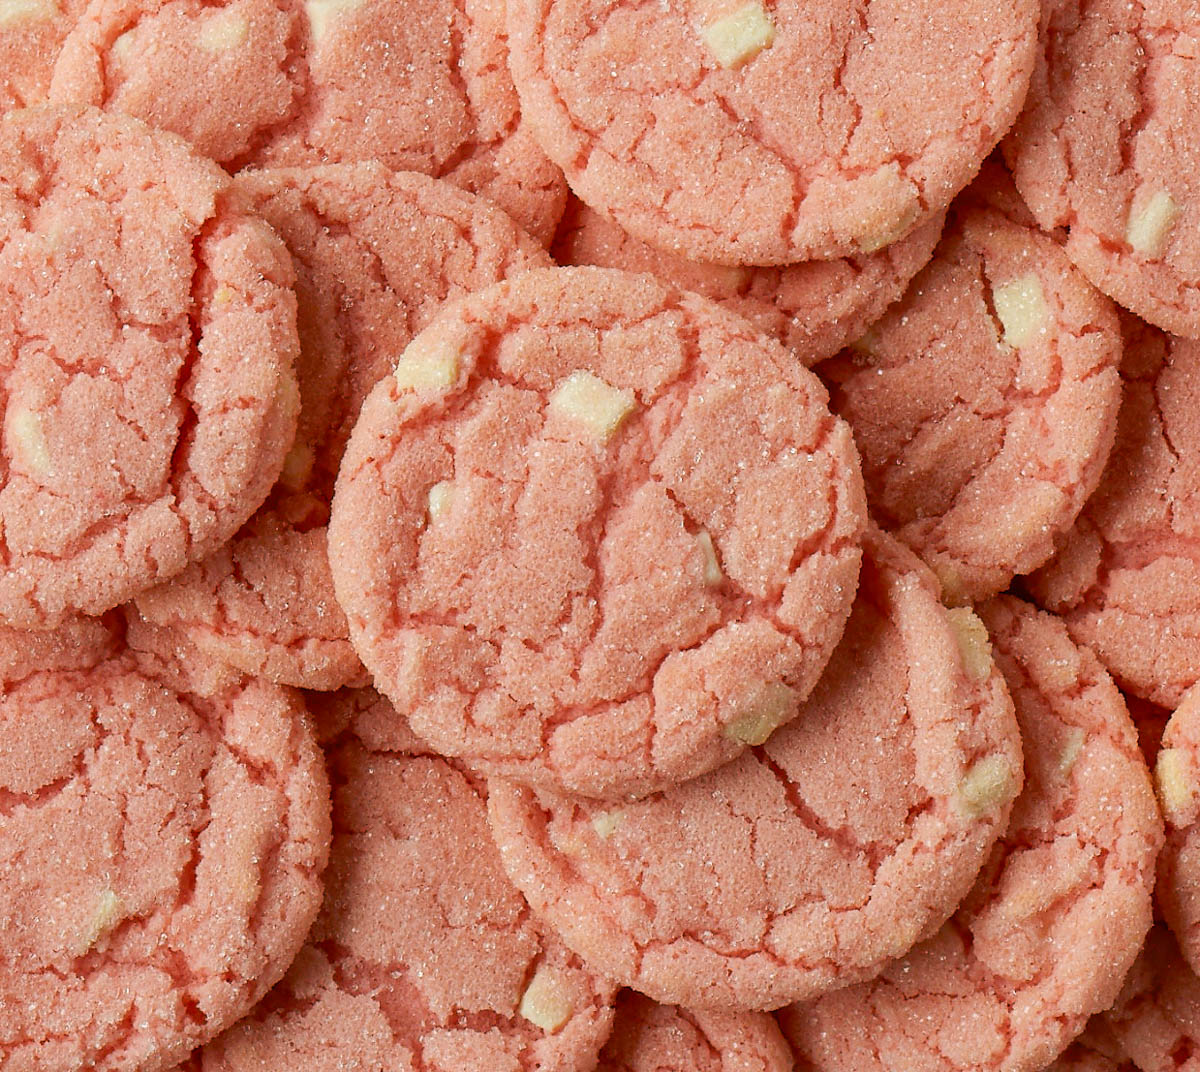 Picture of a bunch of Strawberry crinkles